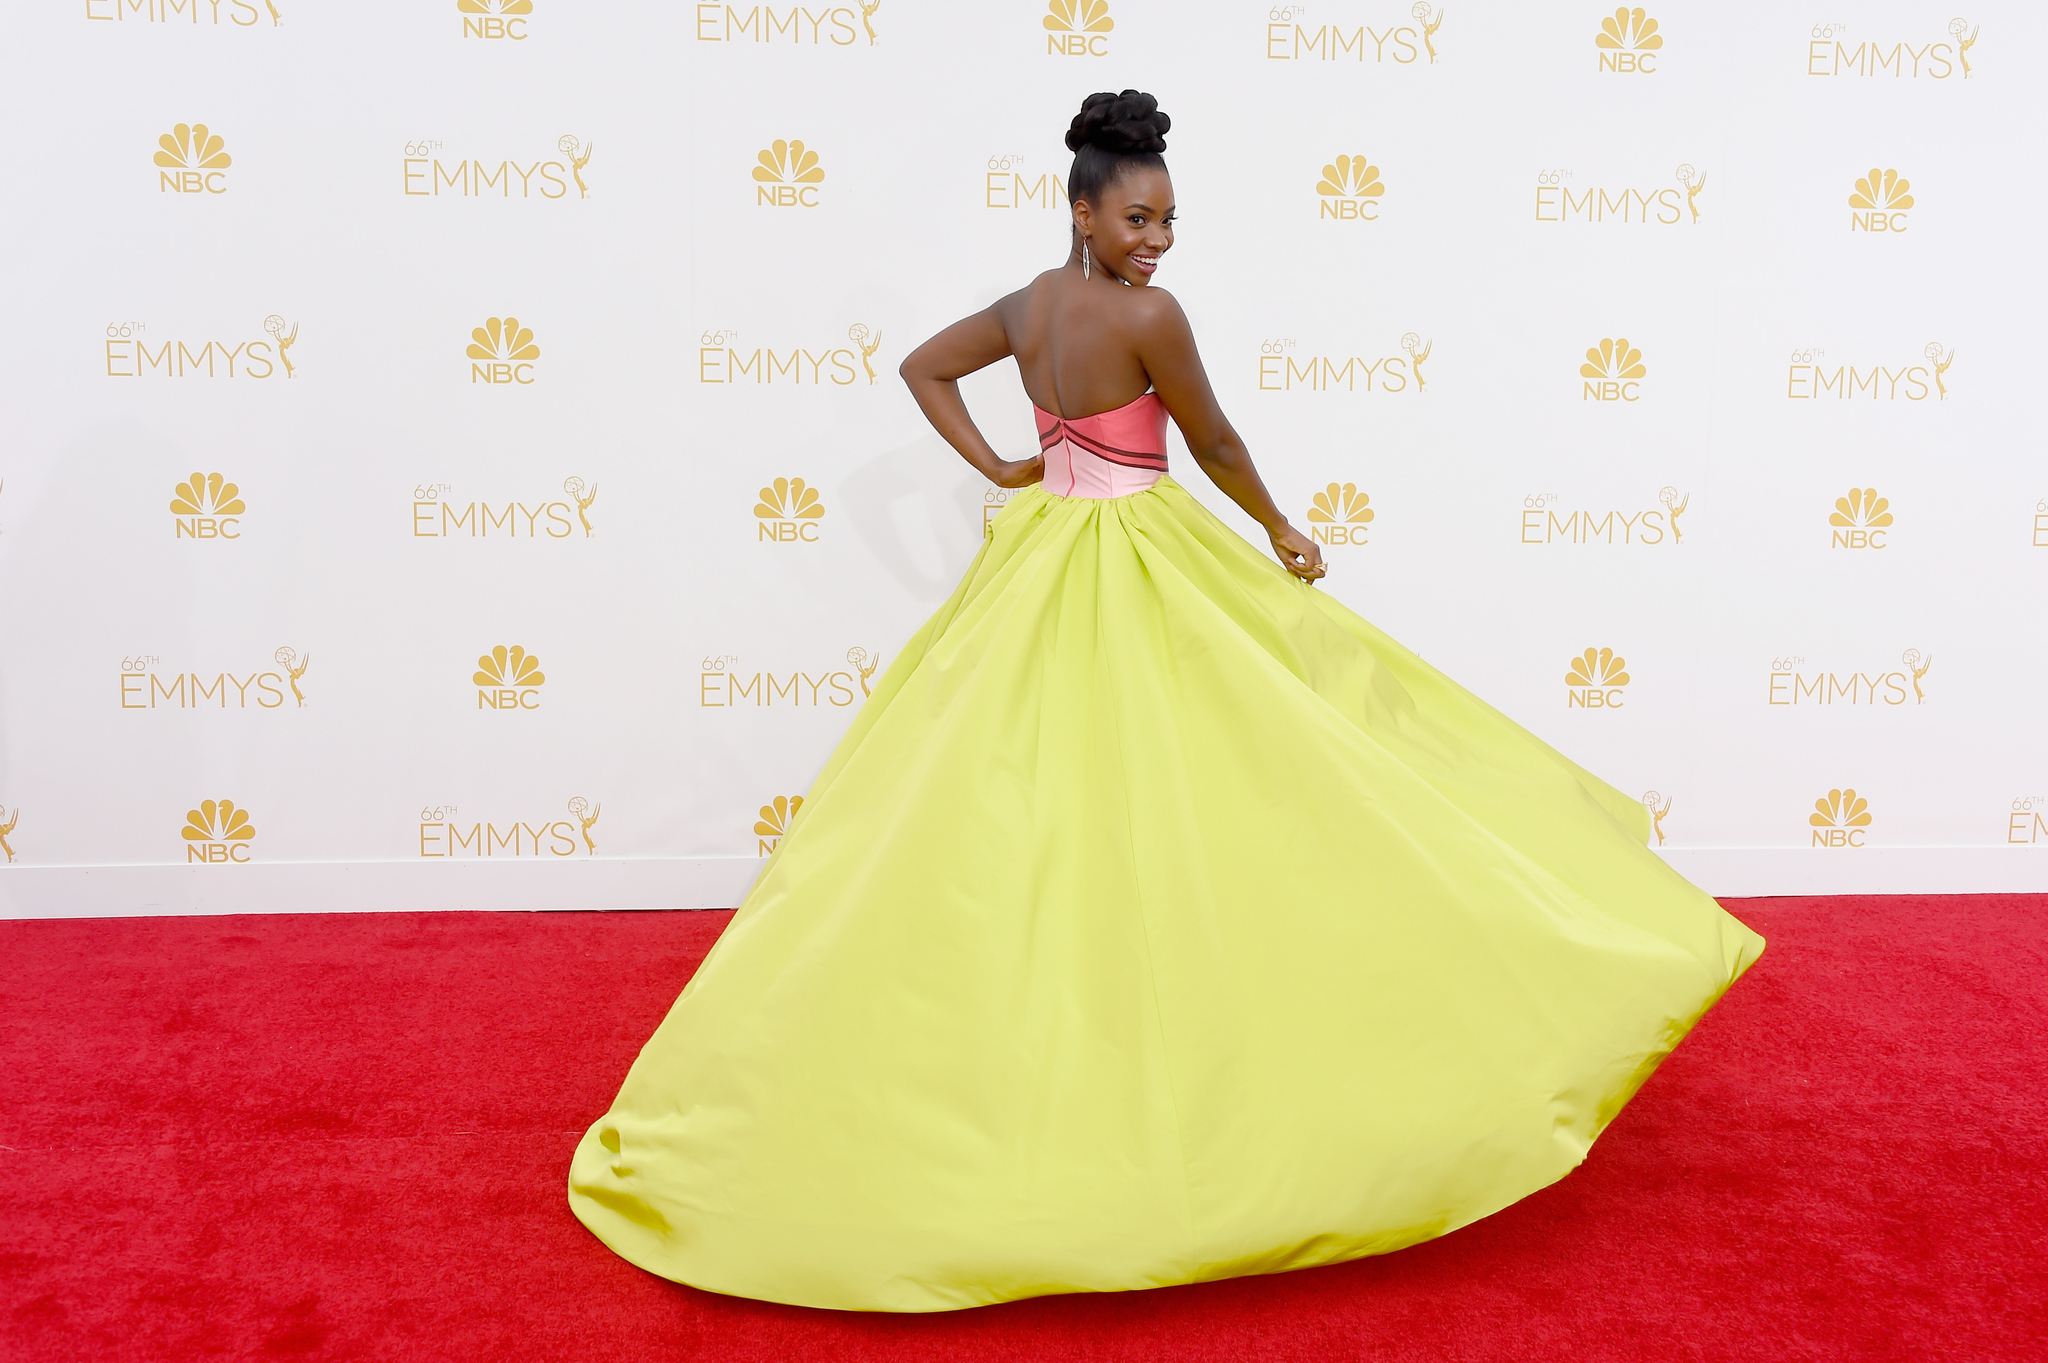 Teyonah Parris at an event for The 66th Primetime Emmy Awards (2014)